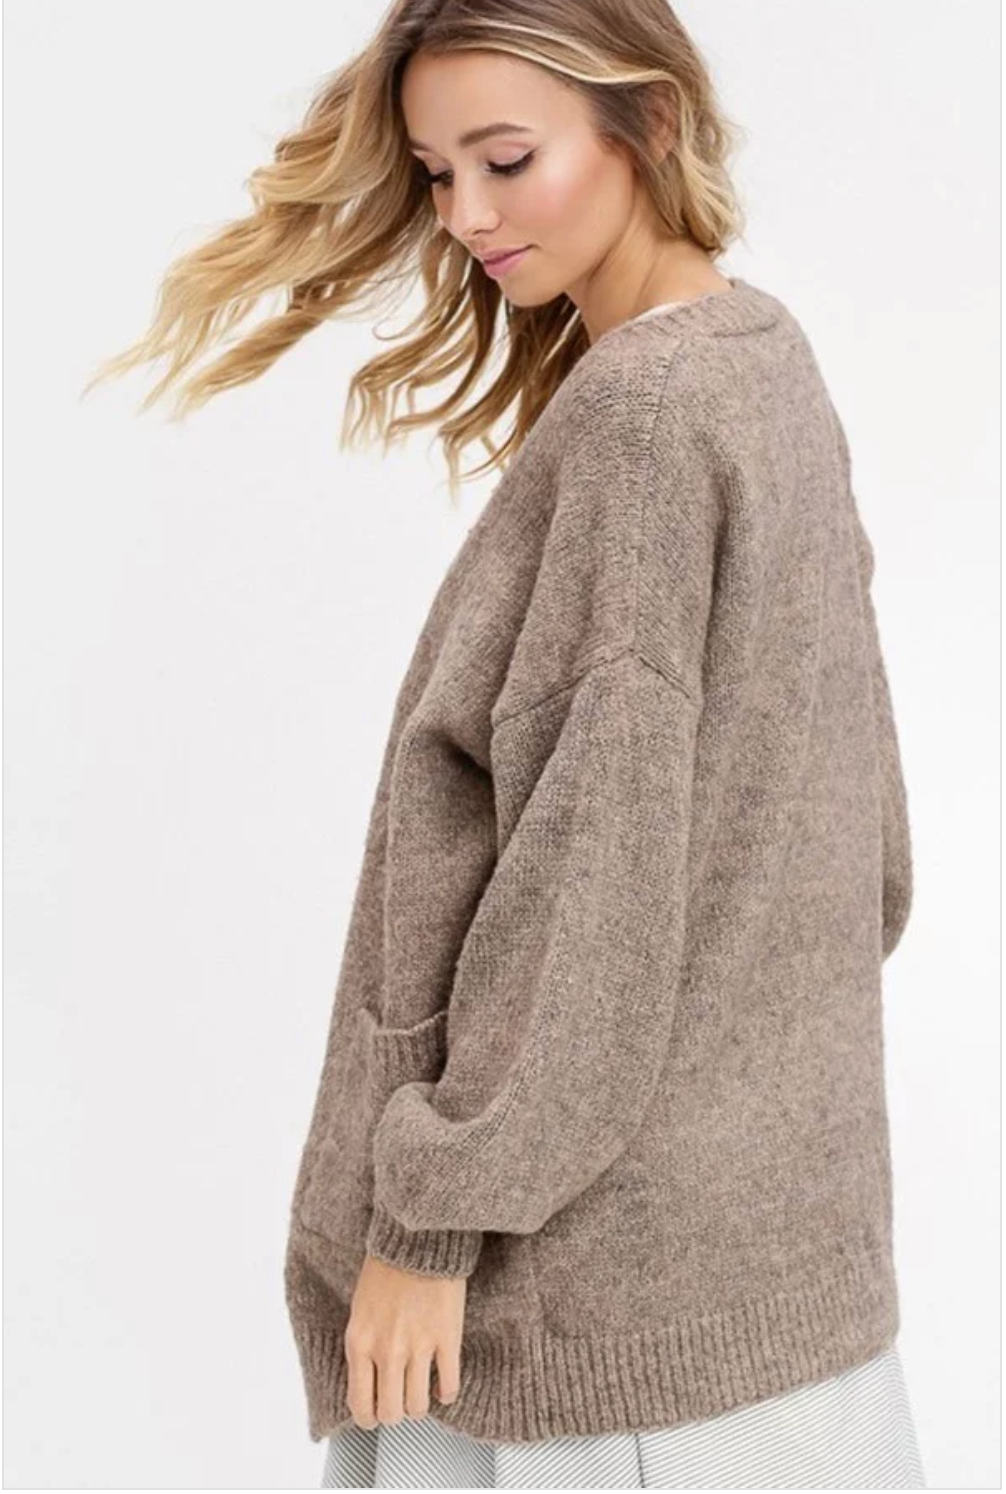 Two tone soft touch wool open cardigan - Sswing Lifestyle Company